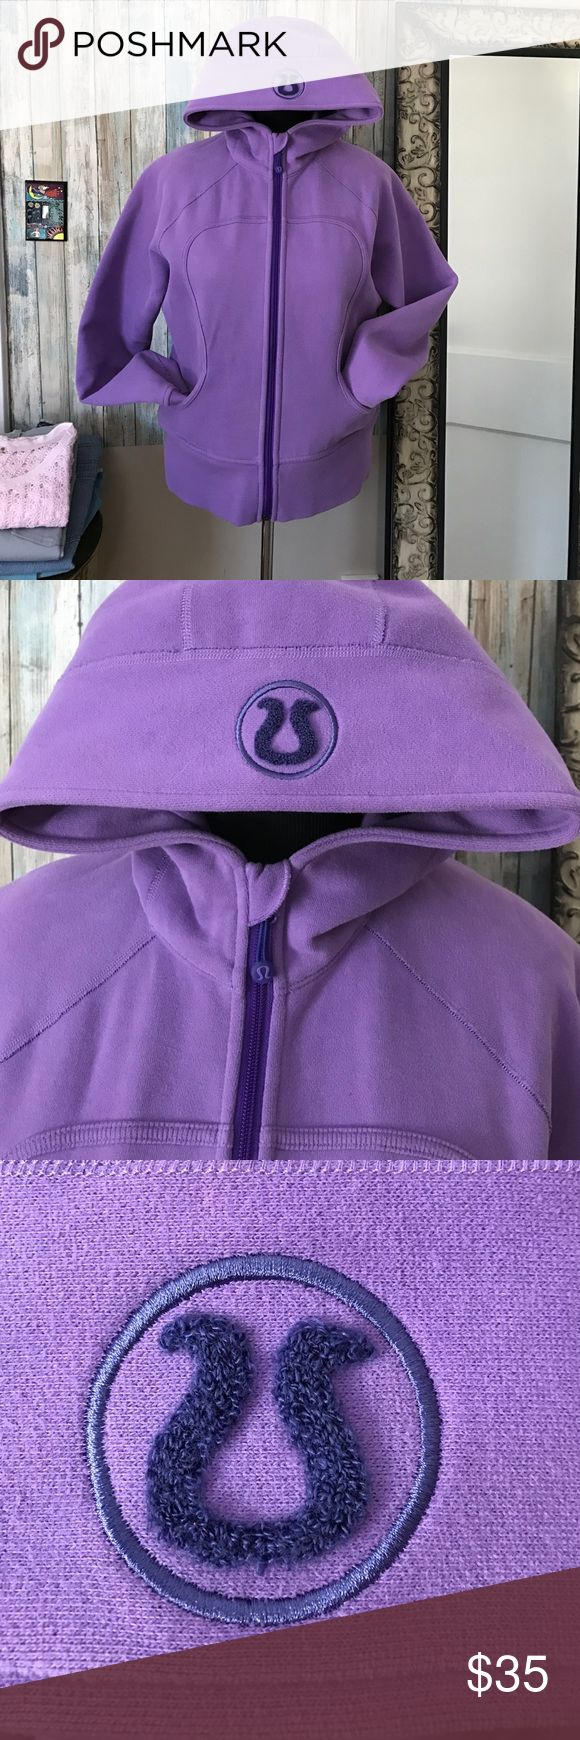 LuLu lemon purple zip up heavy sweatshirt Warm!!  LuLu lemon zip up sweatshirt jacket with pockets. Used but great shape! lululemon Other